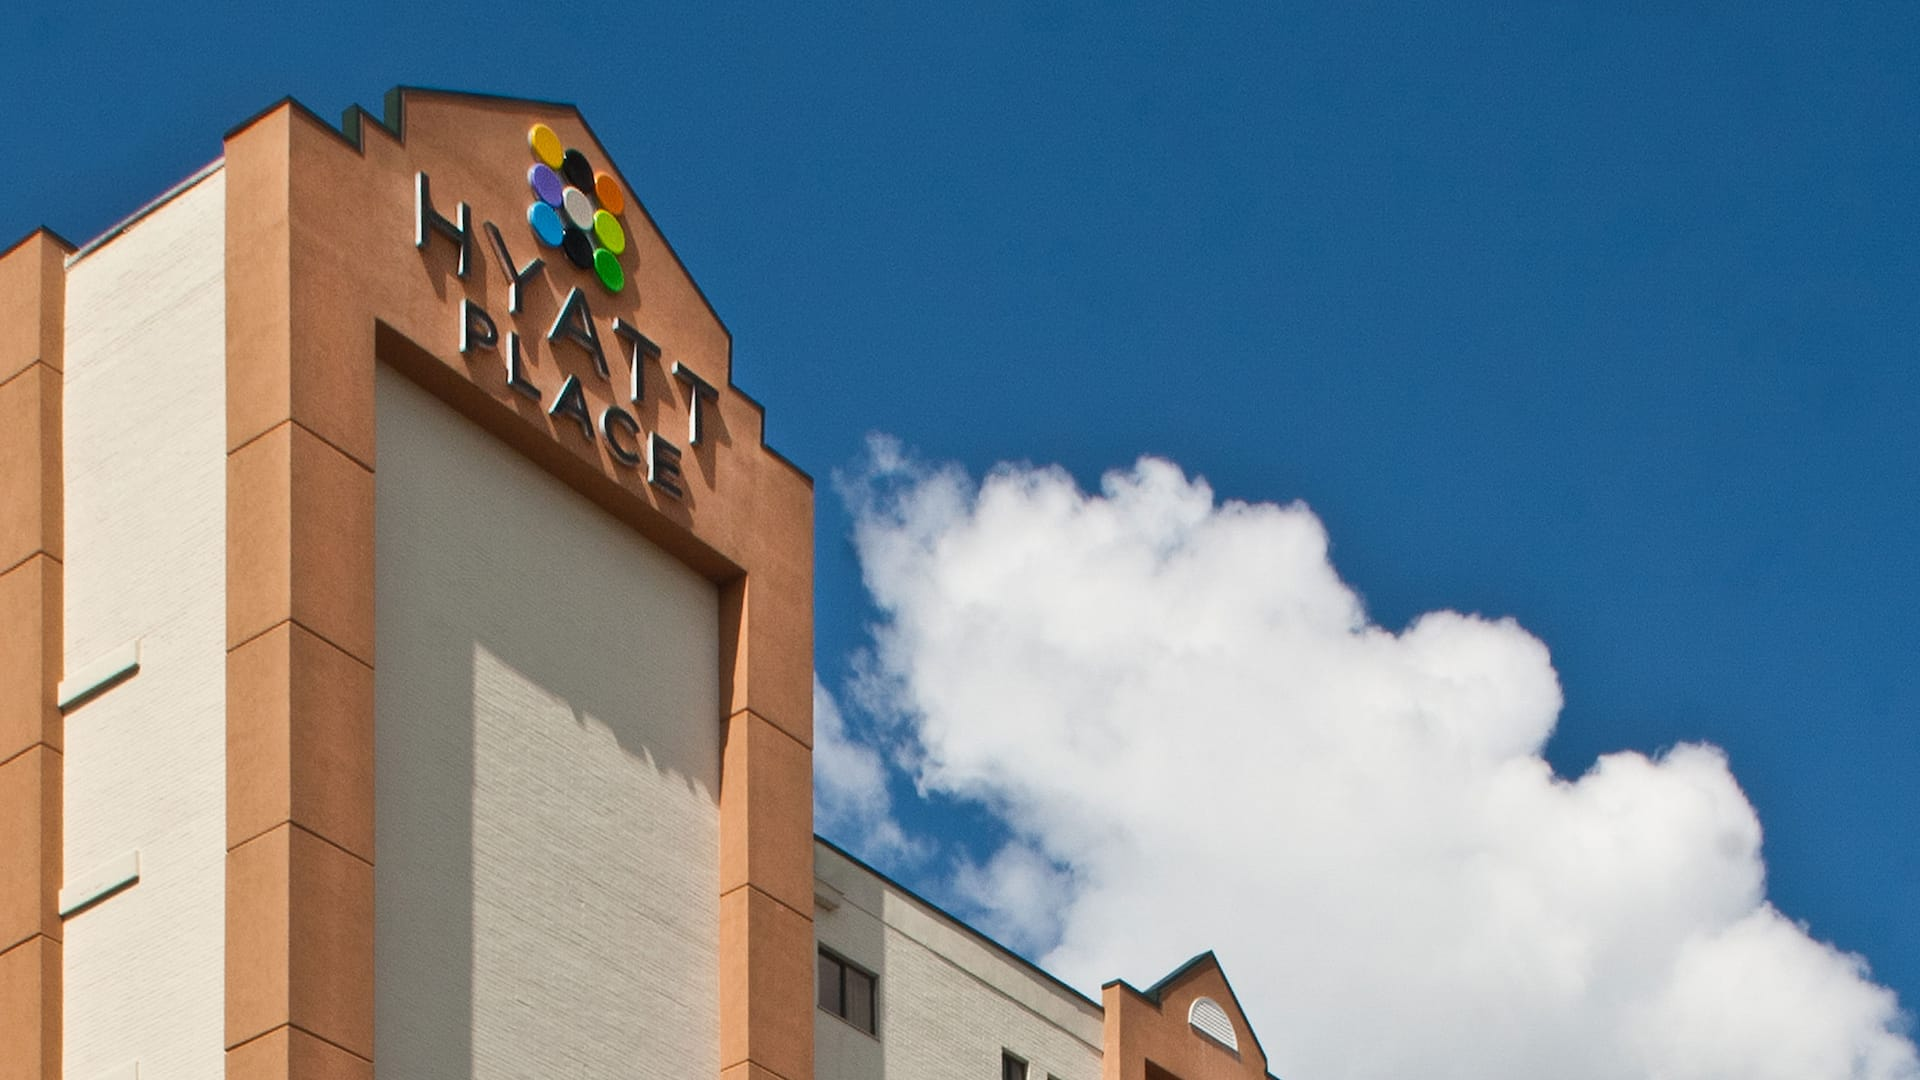 Hyatt Place Atlanta Downtown Exterior